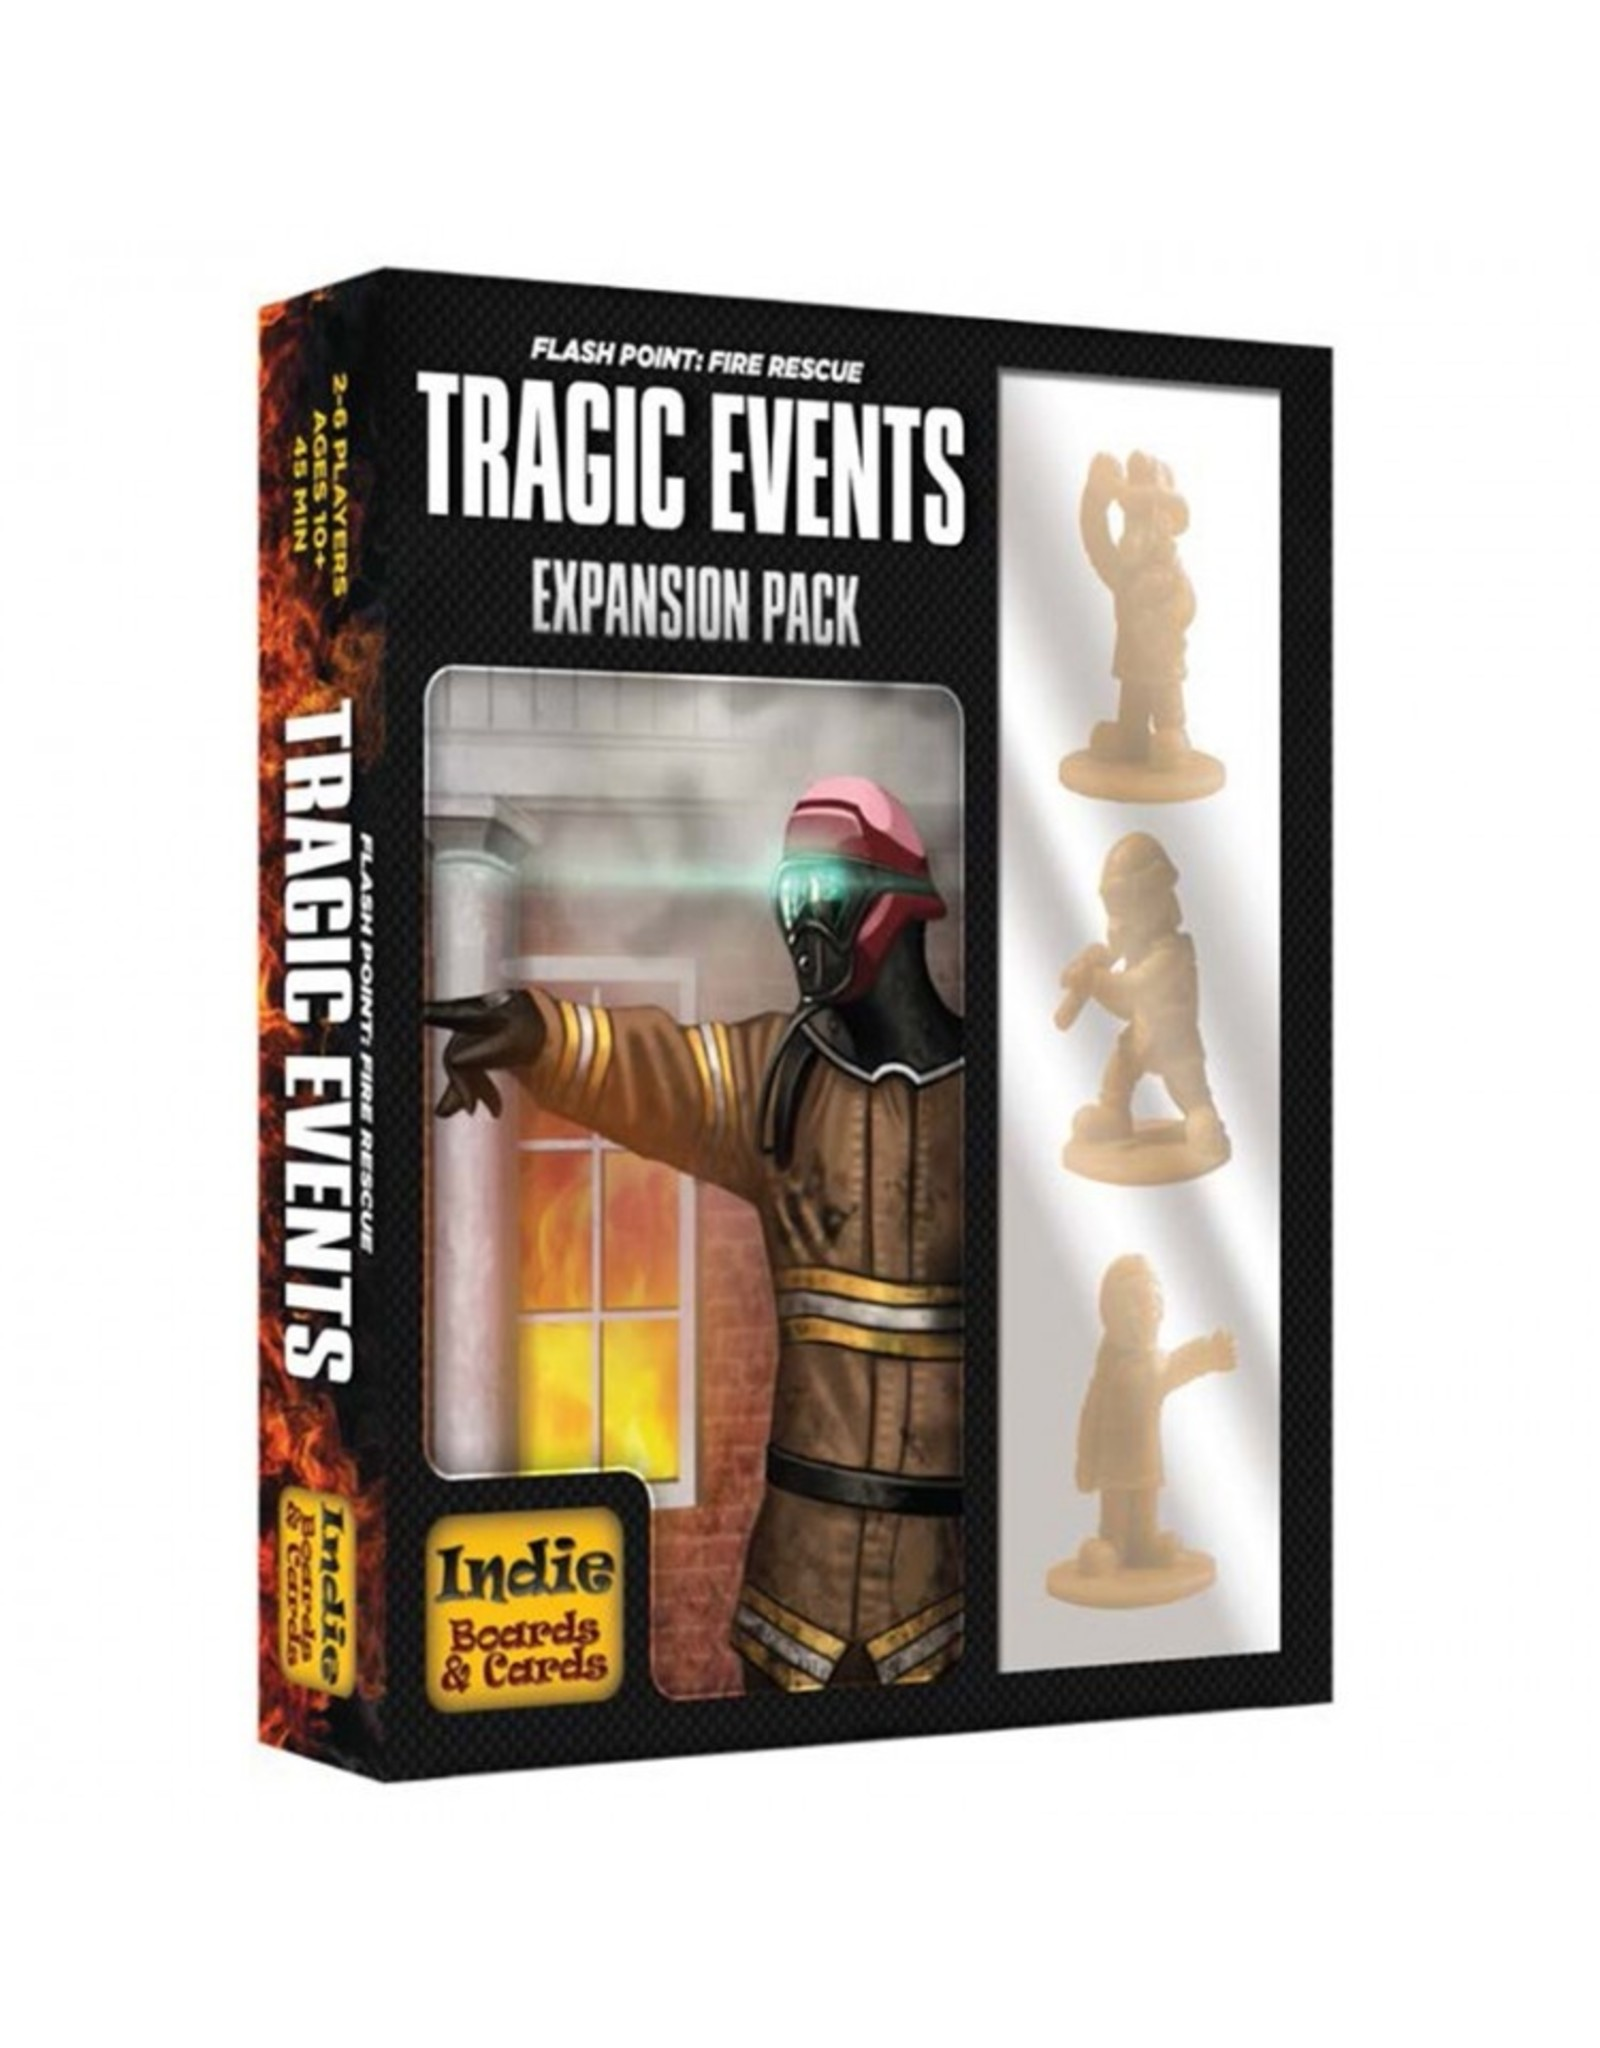 Indie Flash Point: Tragic Events Expansion